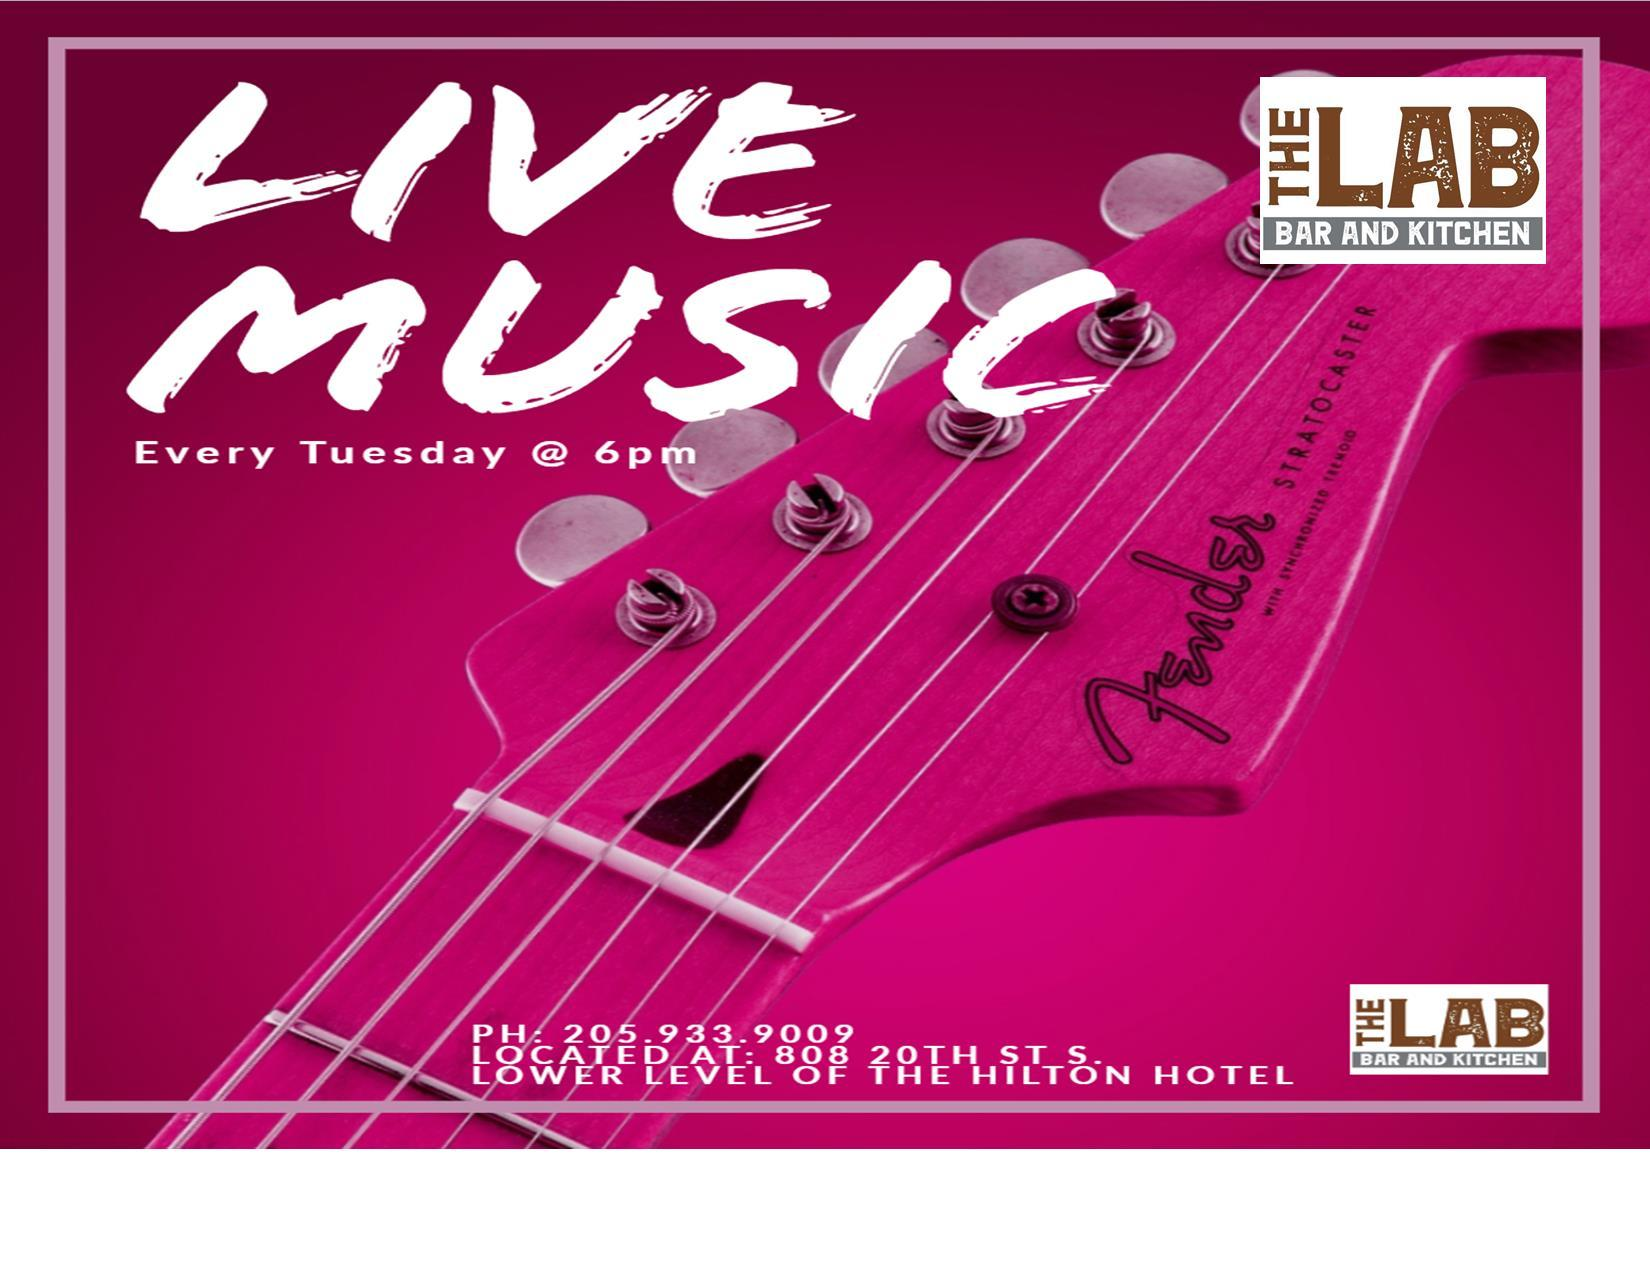 Live Music at The Lab Bar and Kitchen